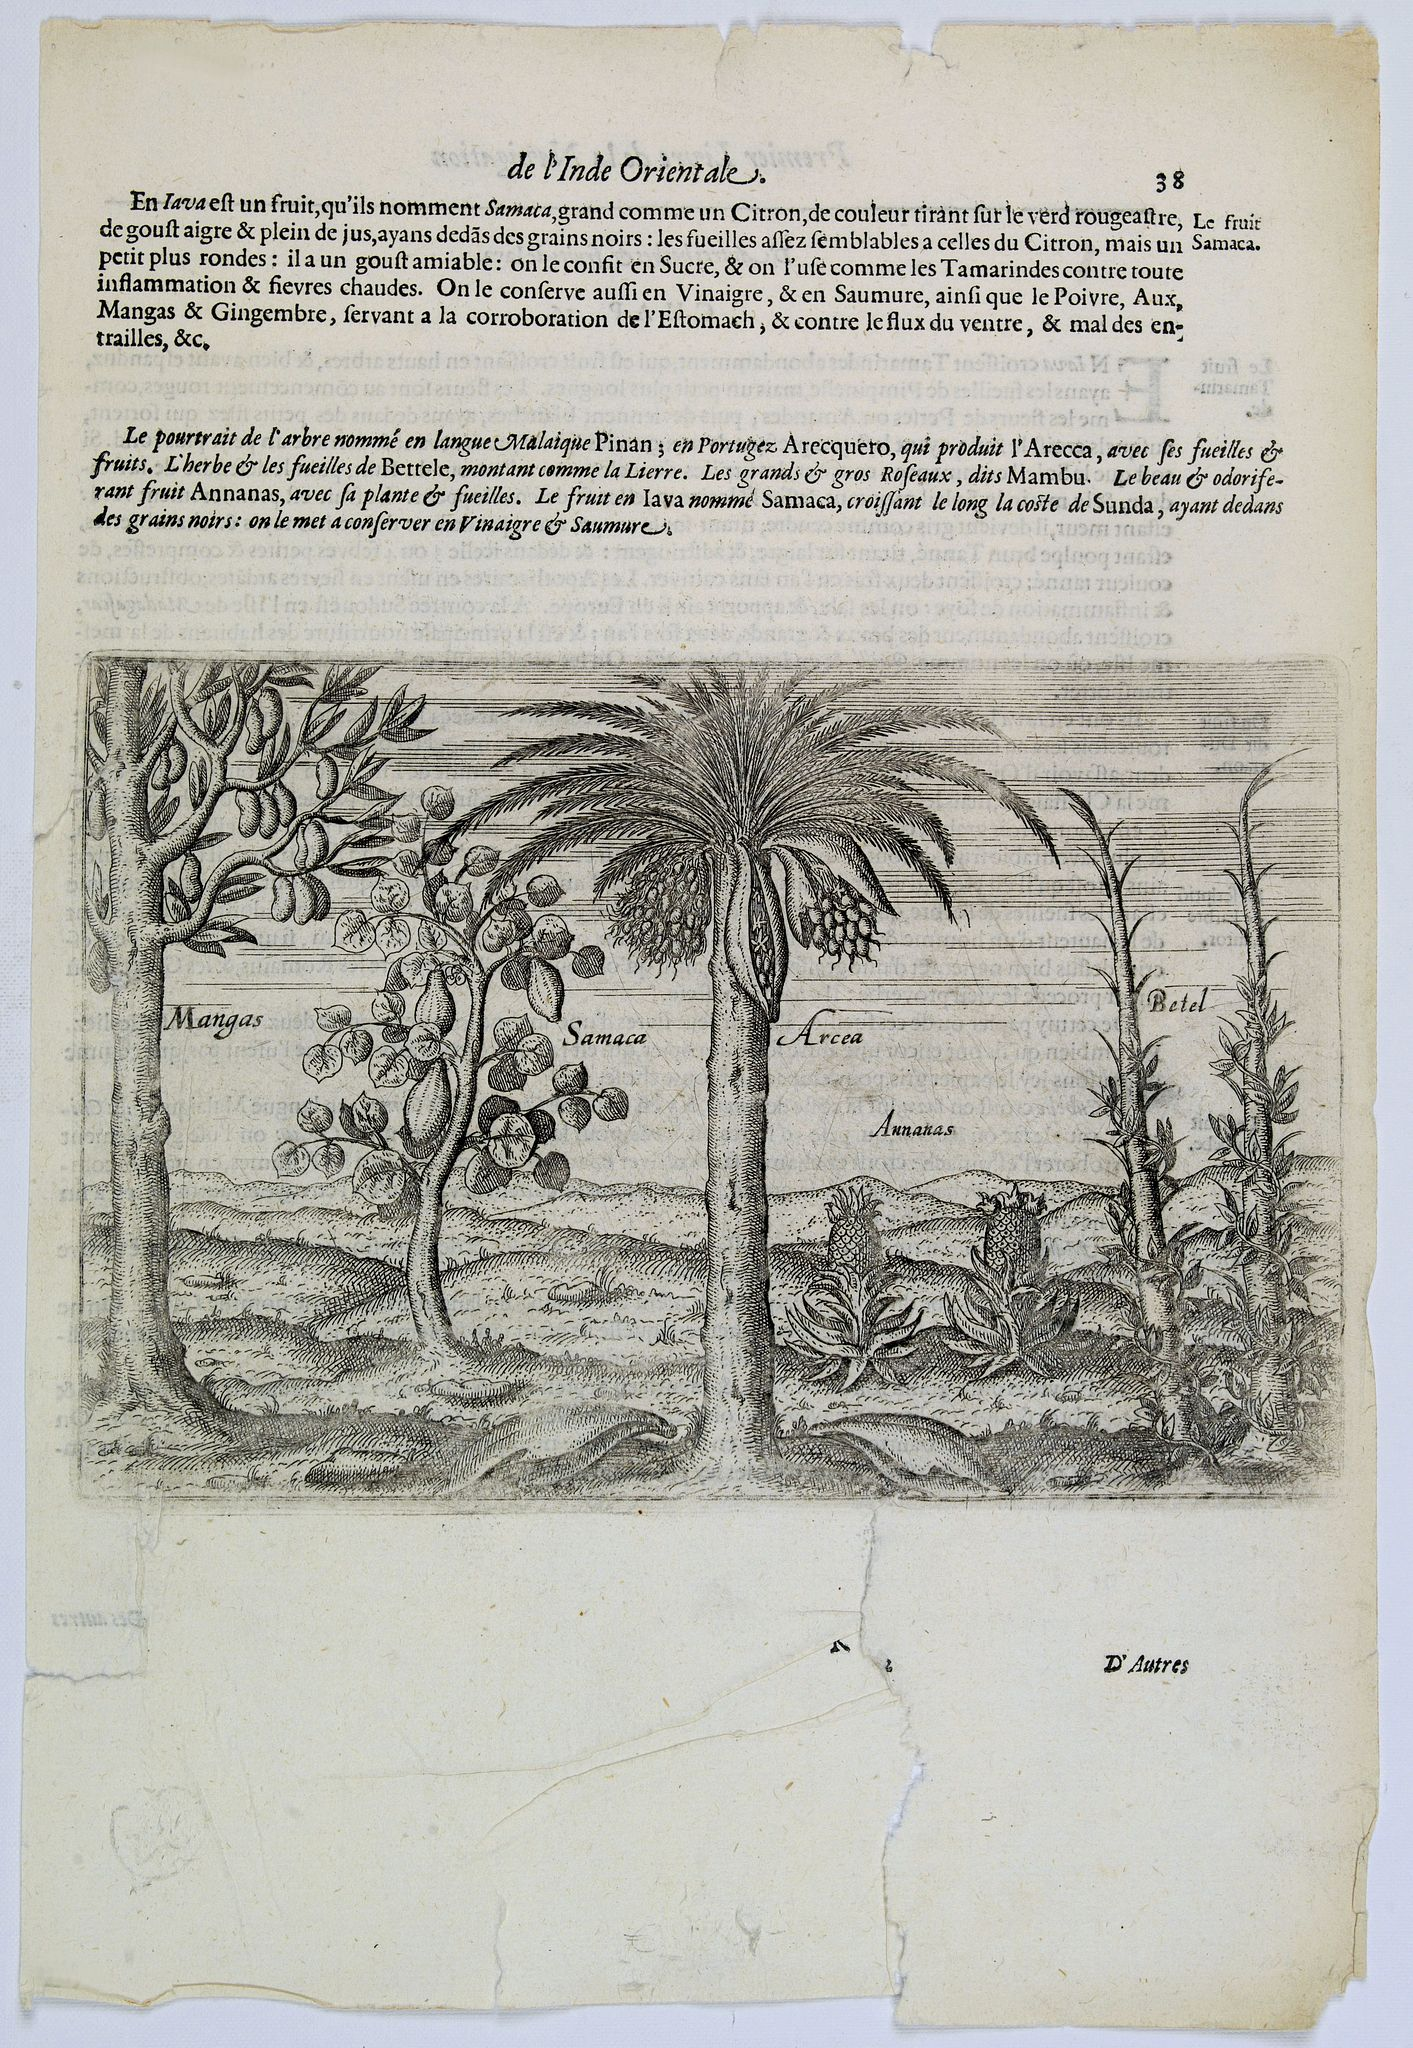 LODEWYCKSZ, Willem,  [Native Flora of Java]., antique map, old maps